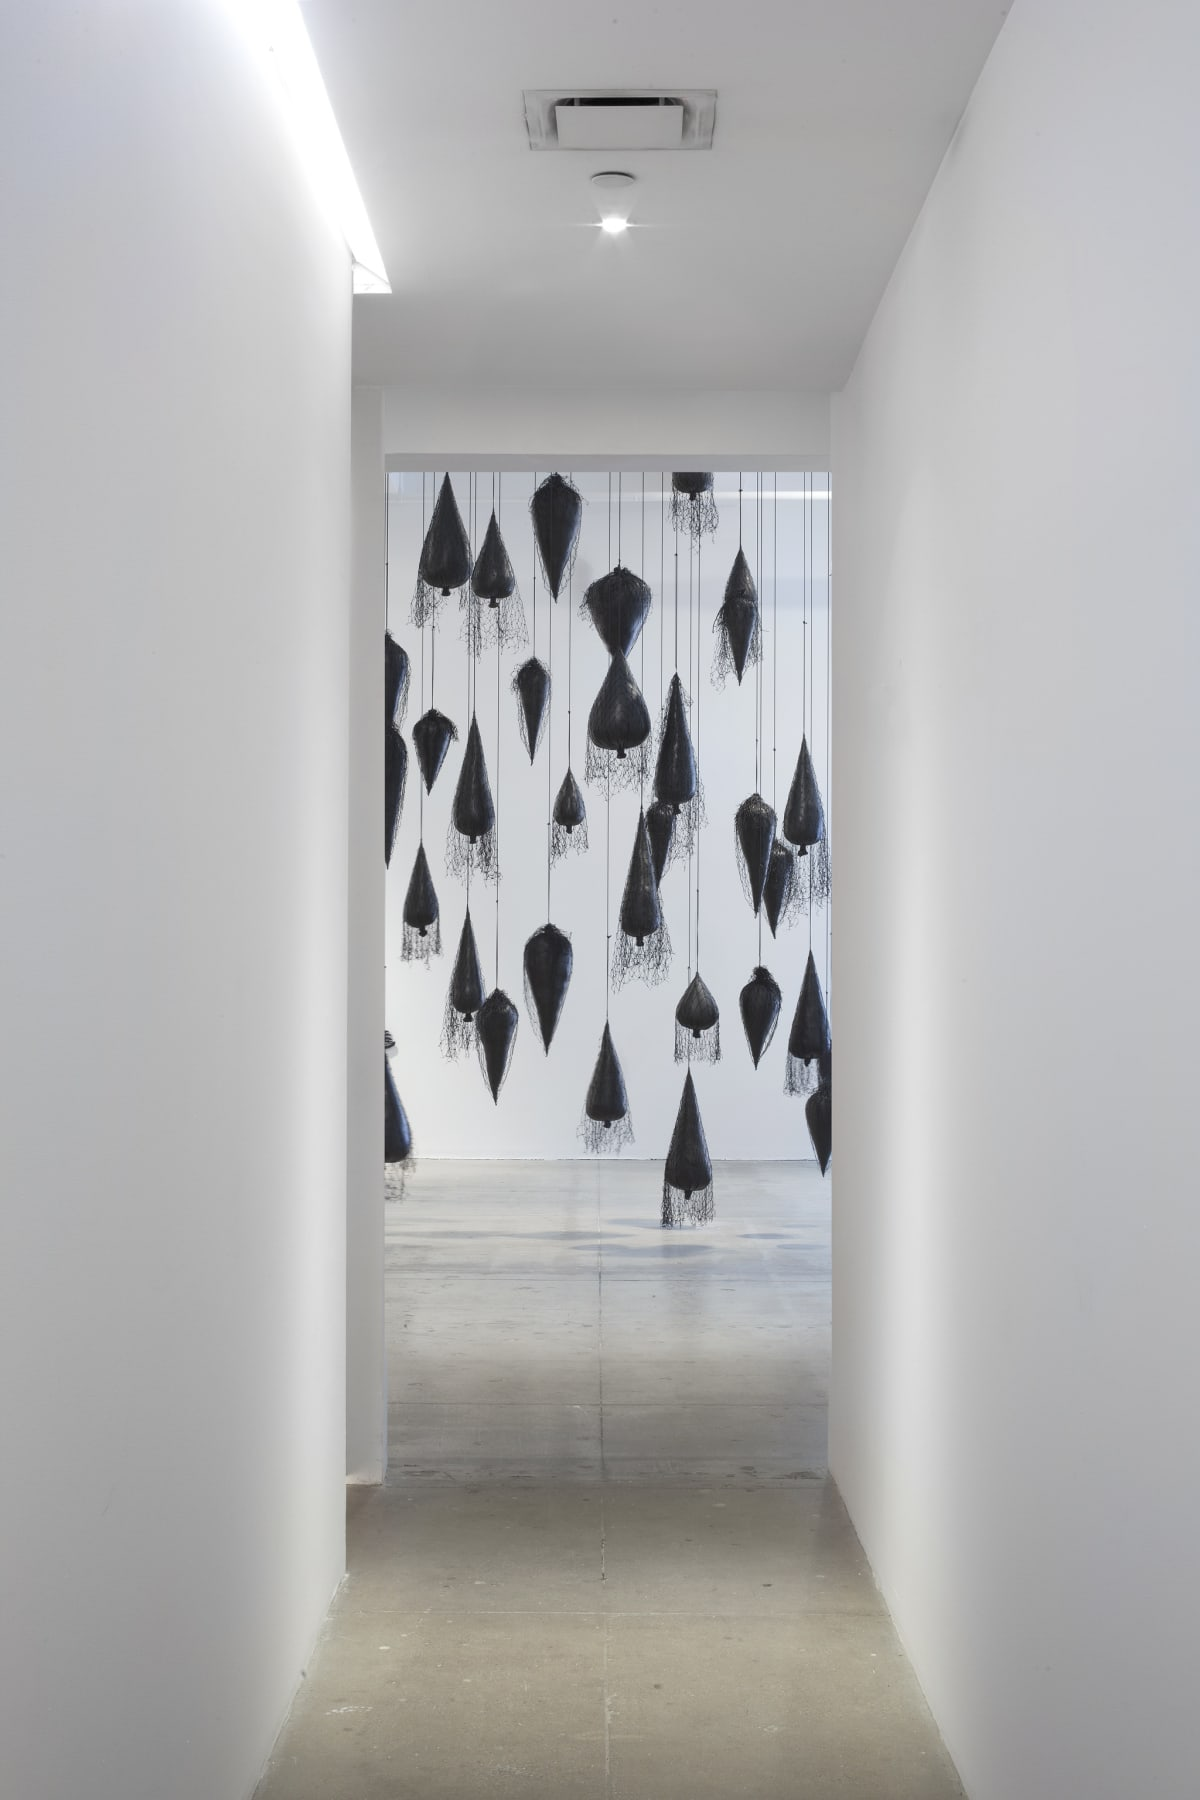 A series of hanging black, balloon-like sculptures resembling trees suspended in midair.